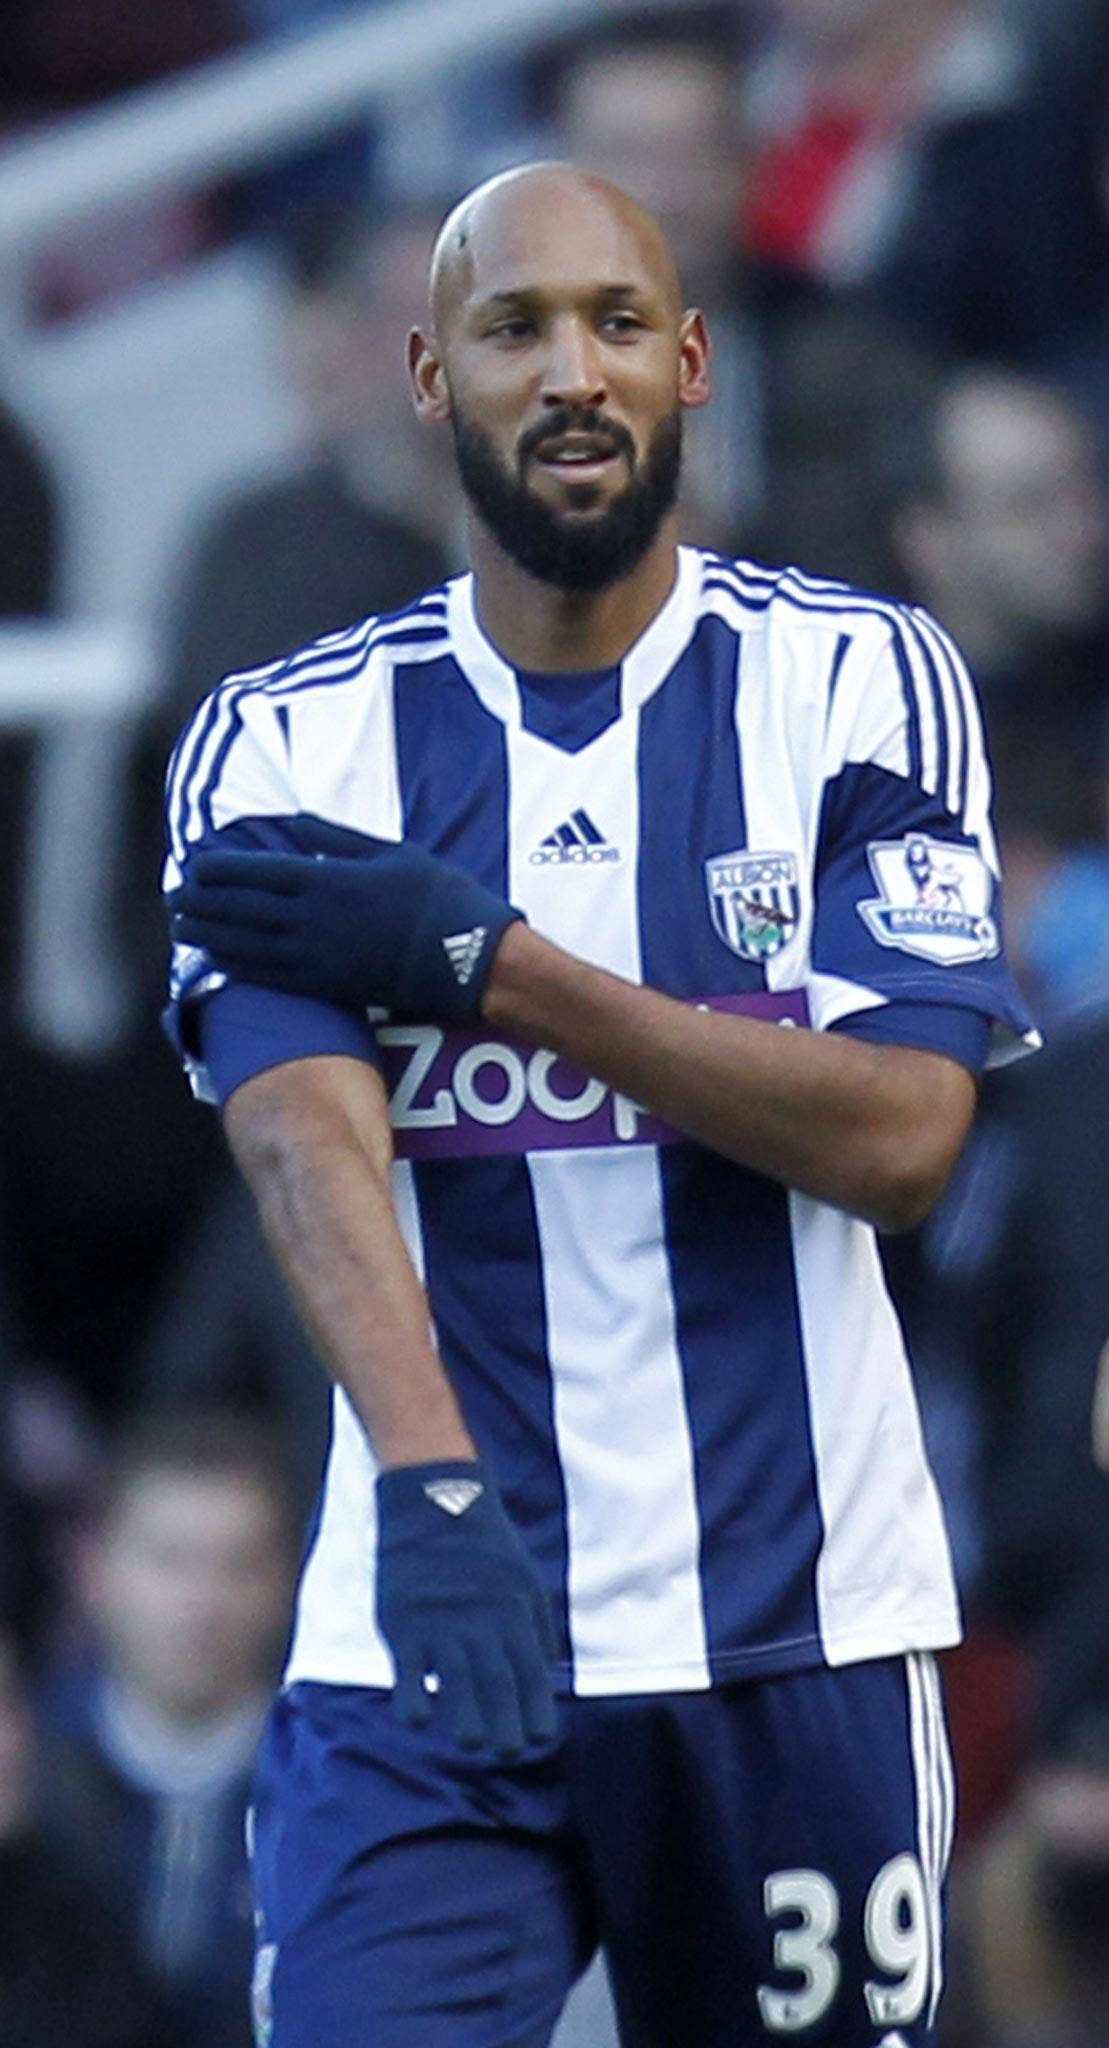 West Bromwich Albion's French striker Nicolas Anelka gestures